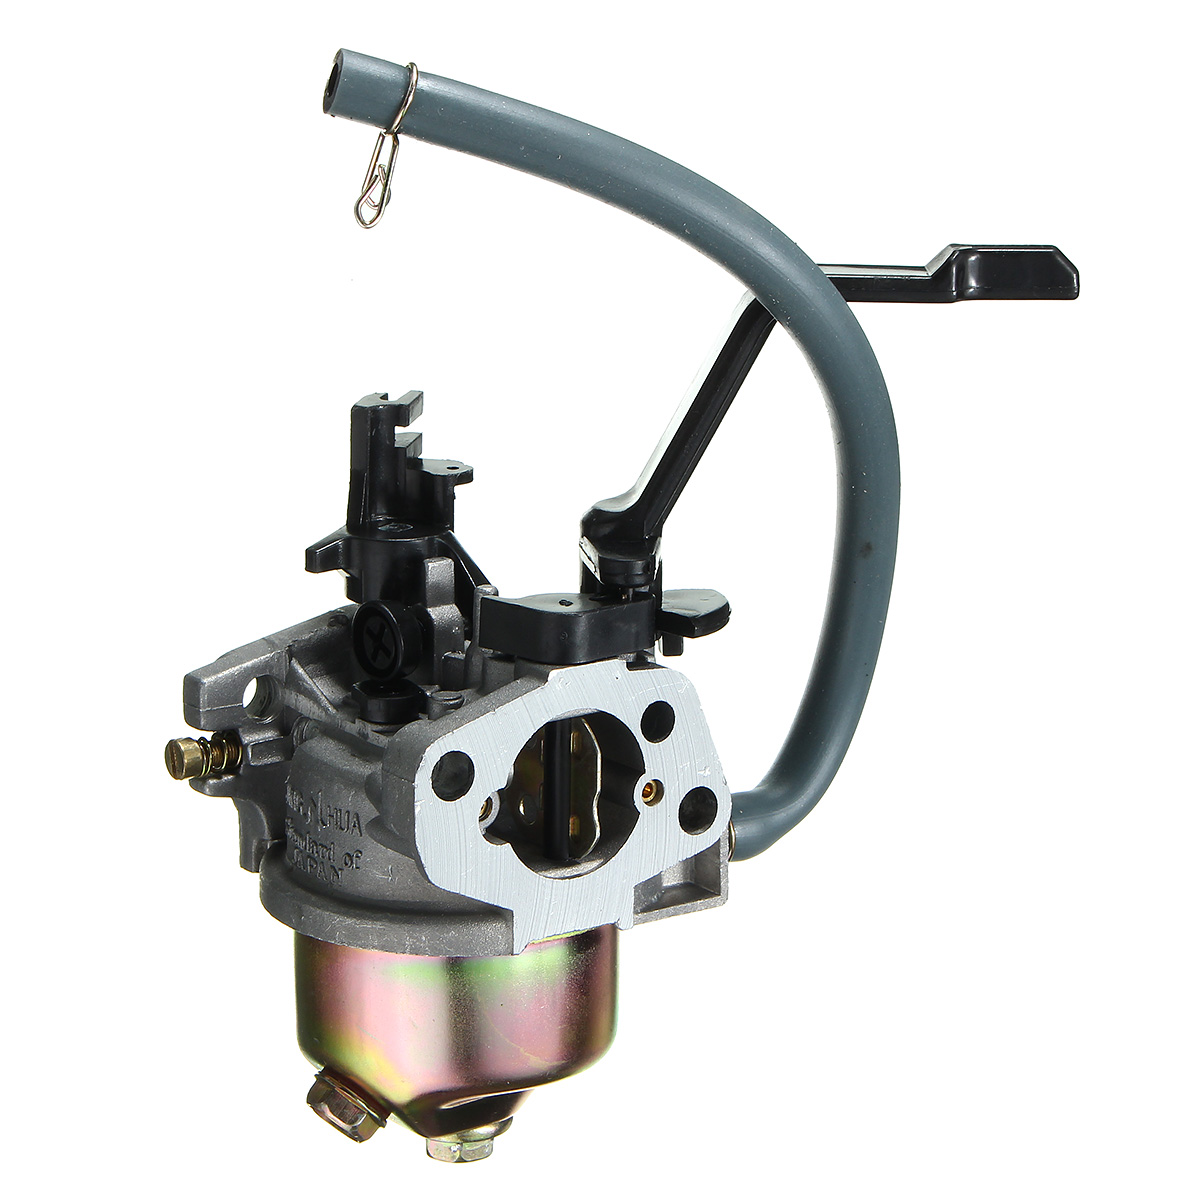 Gx160 gx200 engine motor generator carburetor 5hp motor